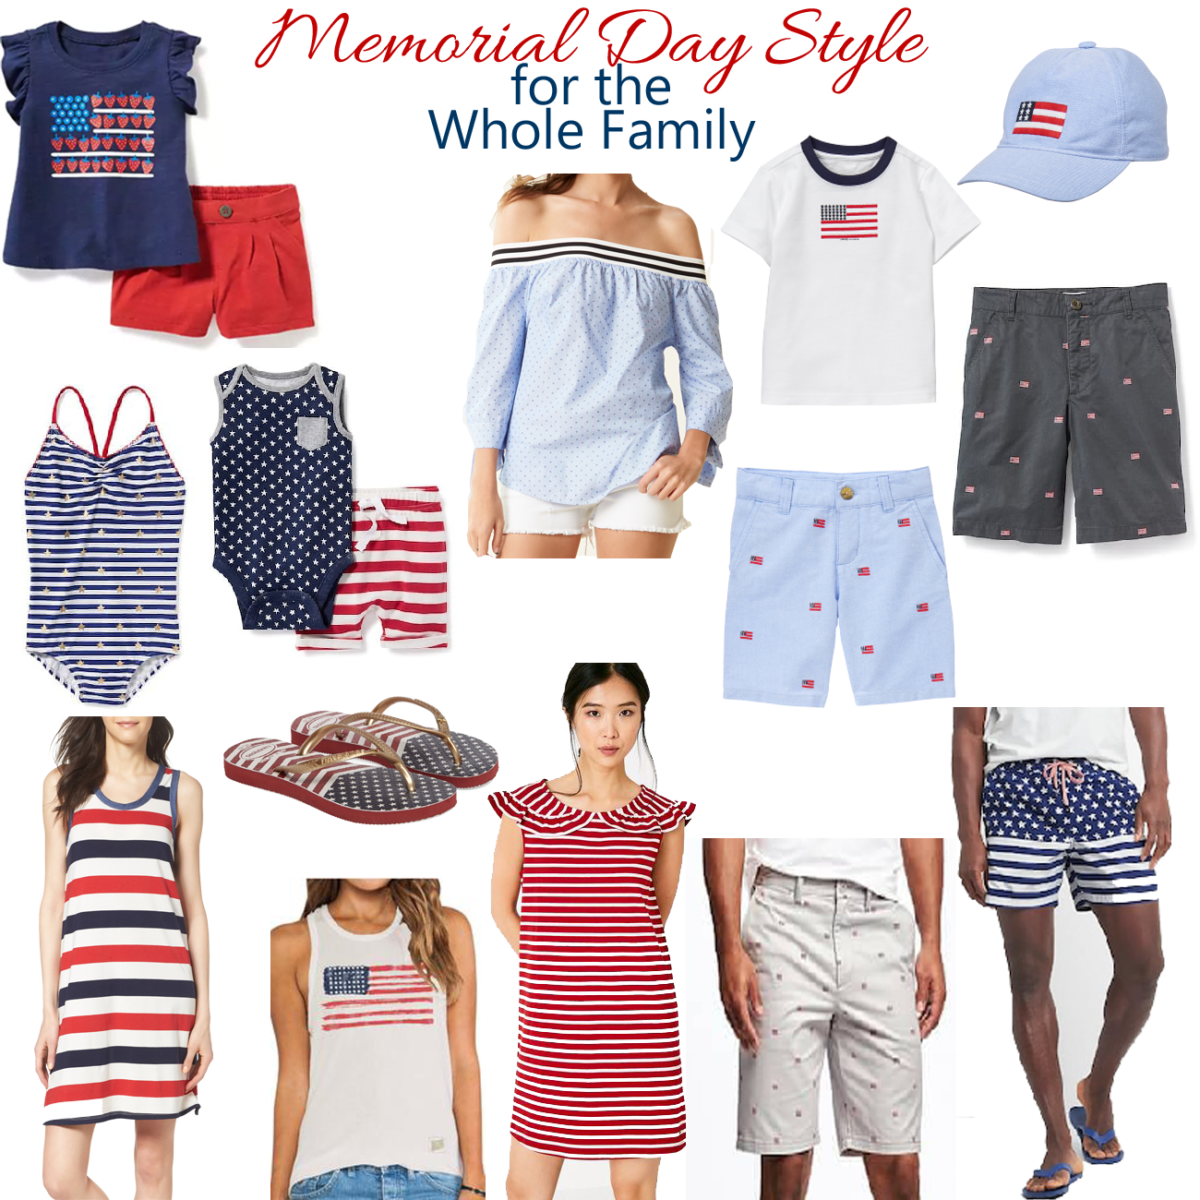 Cute Memorial Day Outfits for the Whole Family